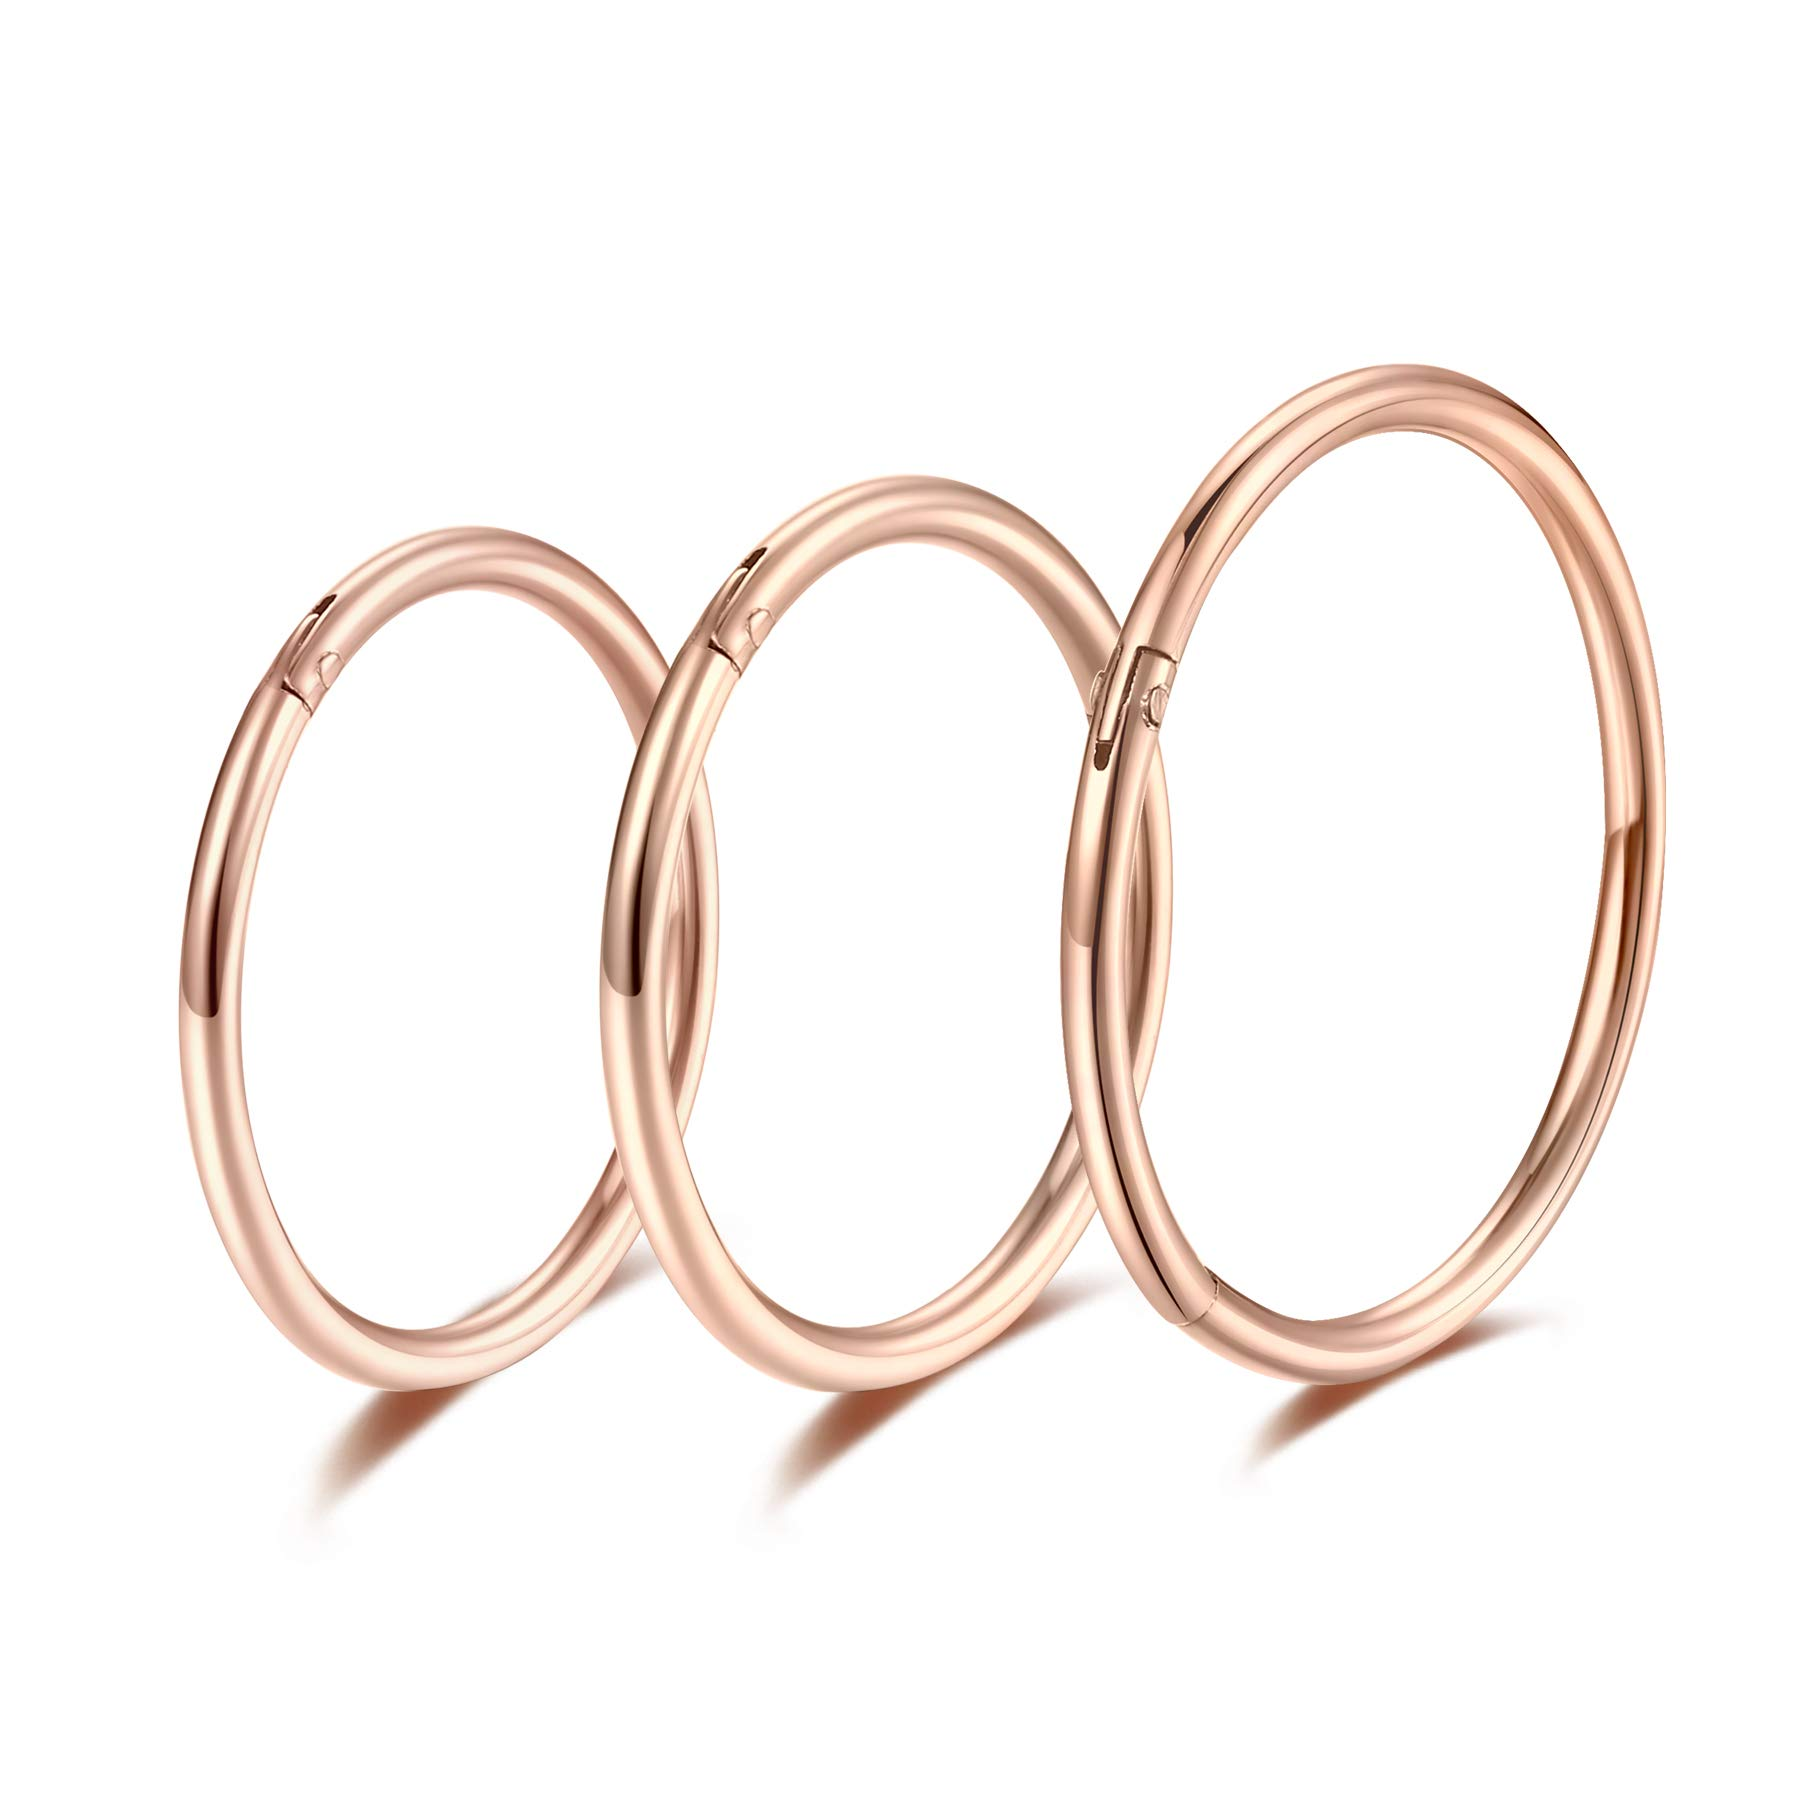 Rose Gold Hinged 20g 18g 16g Nose Rings Hoops 6mm 8mm 10mm 12mm 14mm 16mm Septum Ring Clicker Cartilage Helix Hoop Earrings Set